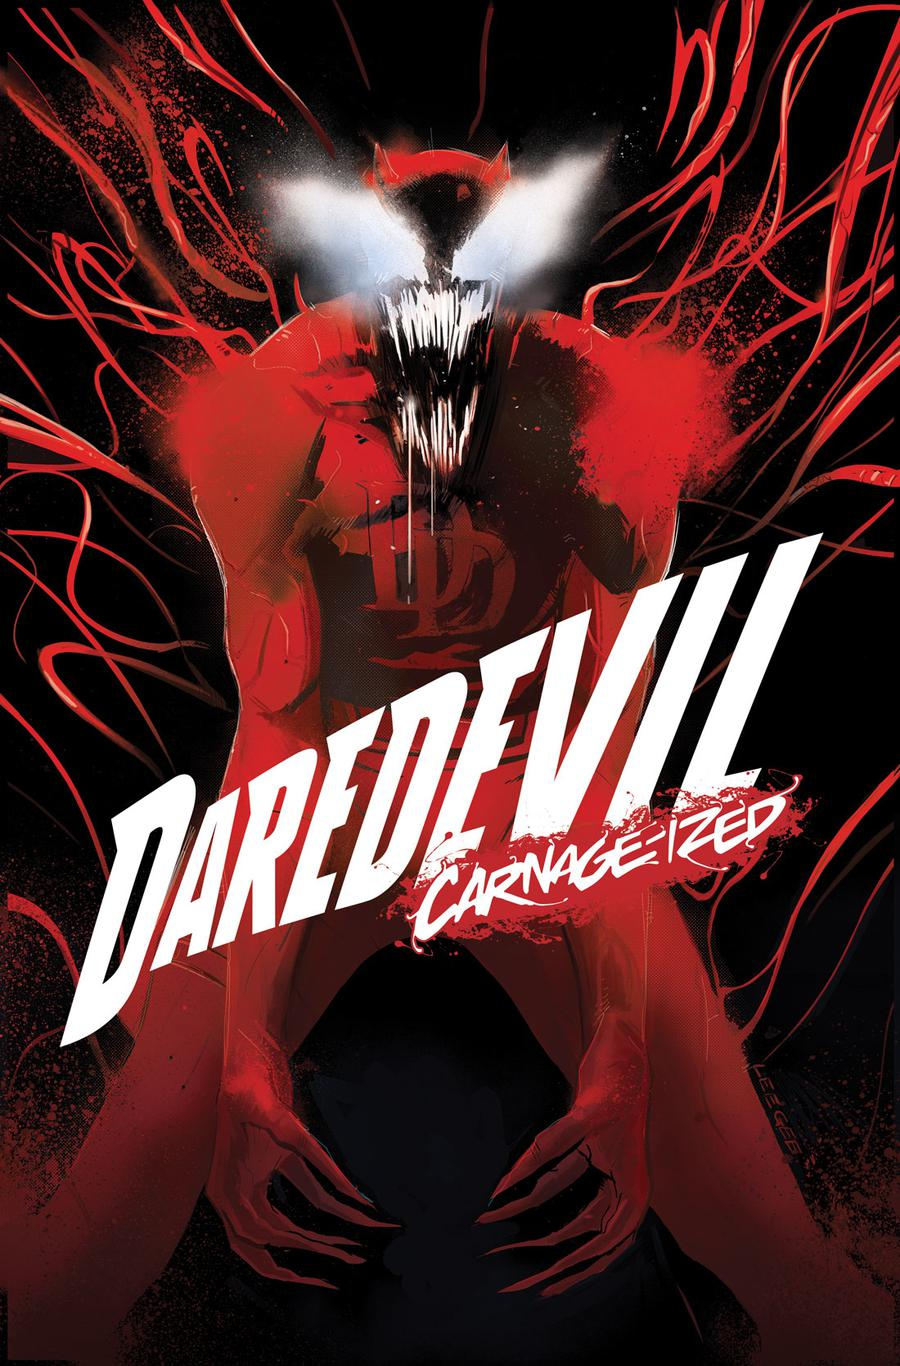 Daredevil Vol 6 #8 Cover B Variant Lee Garbett Carnage-Ized Cover